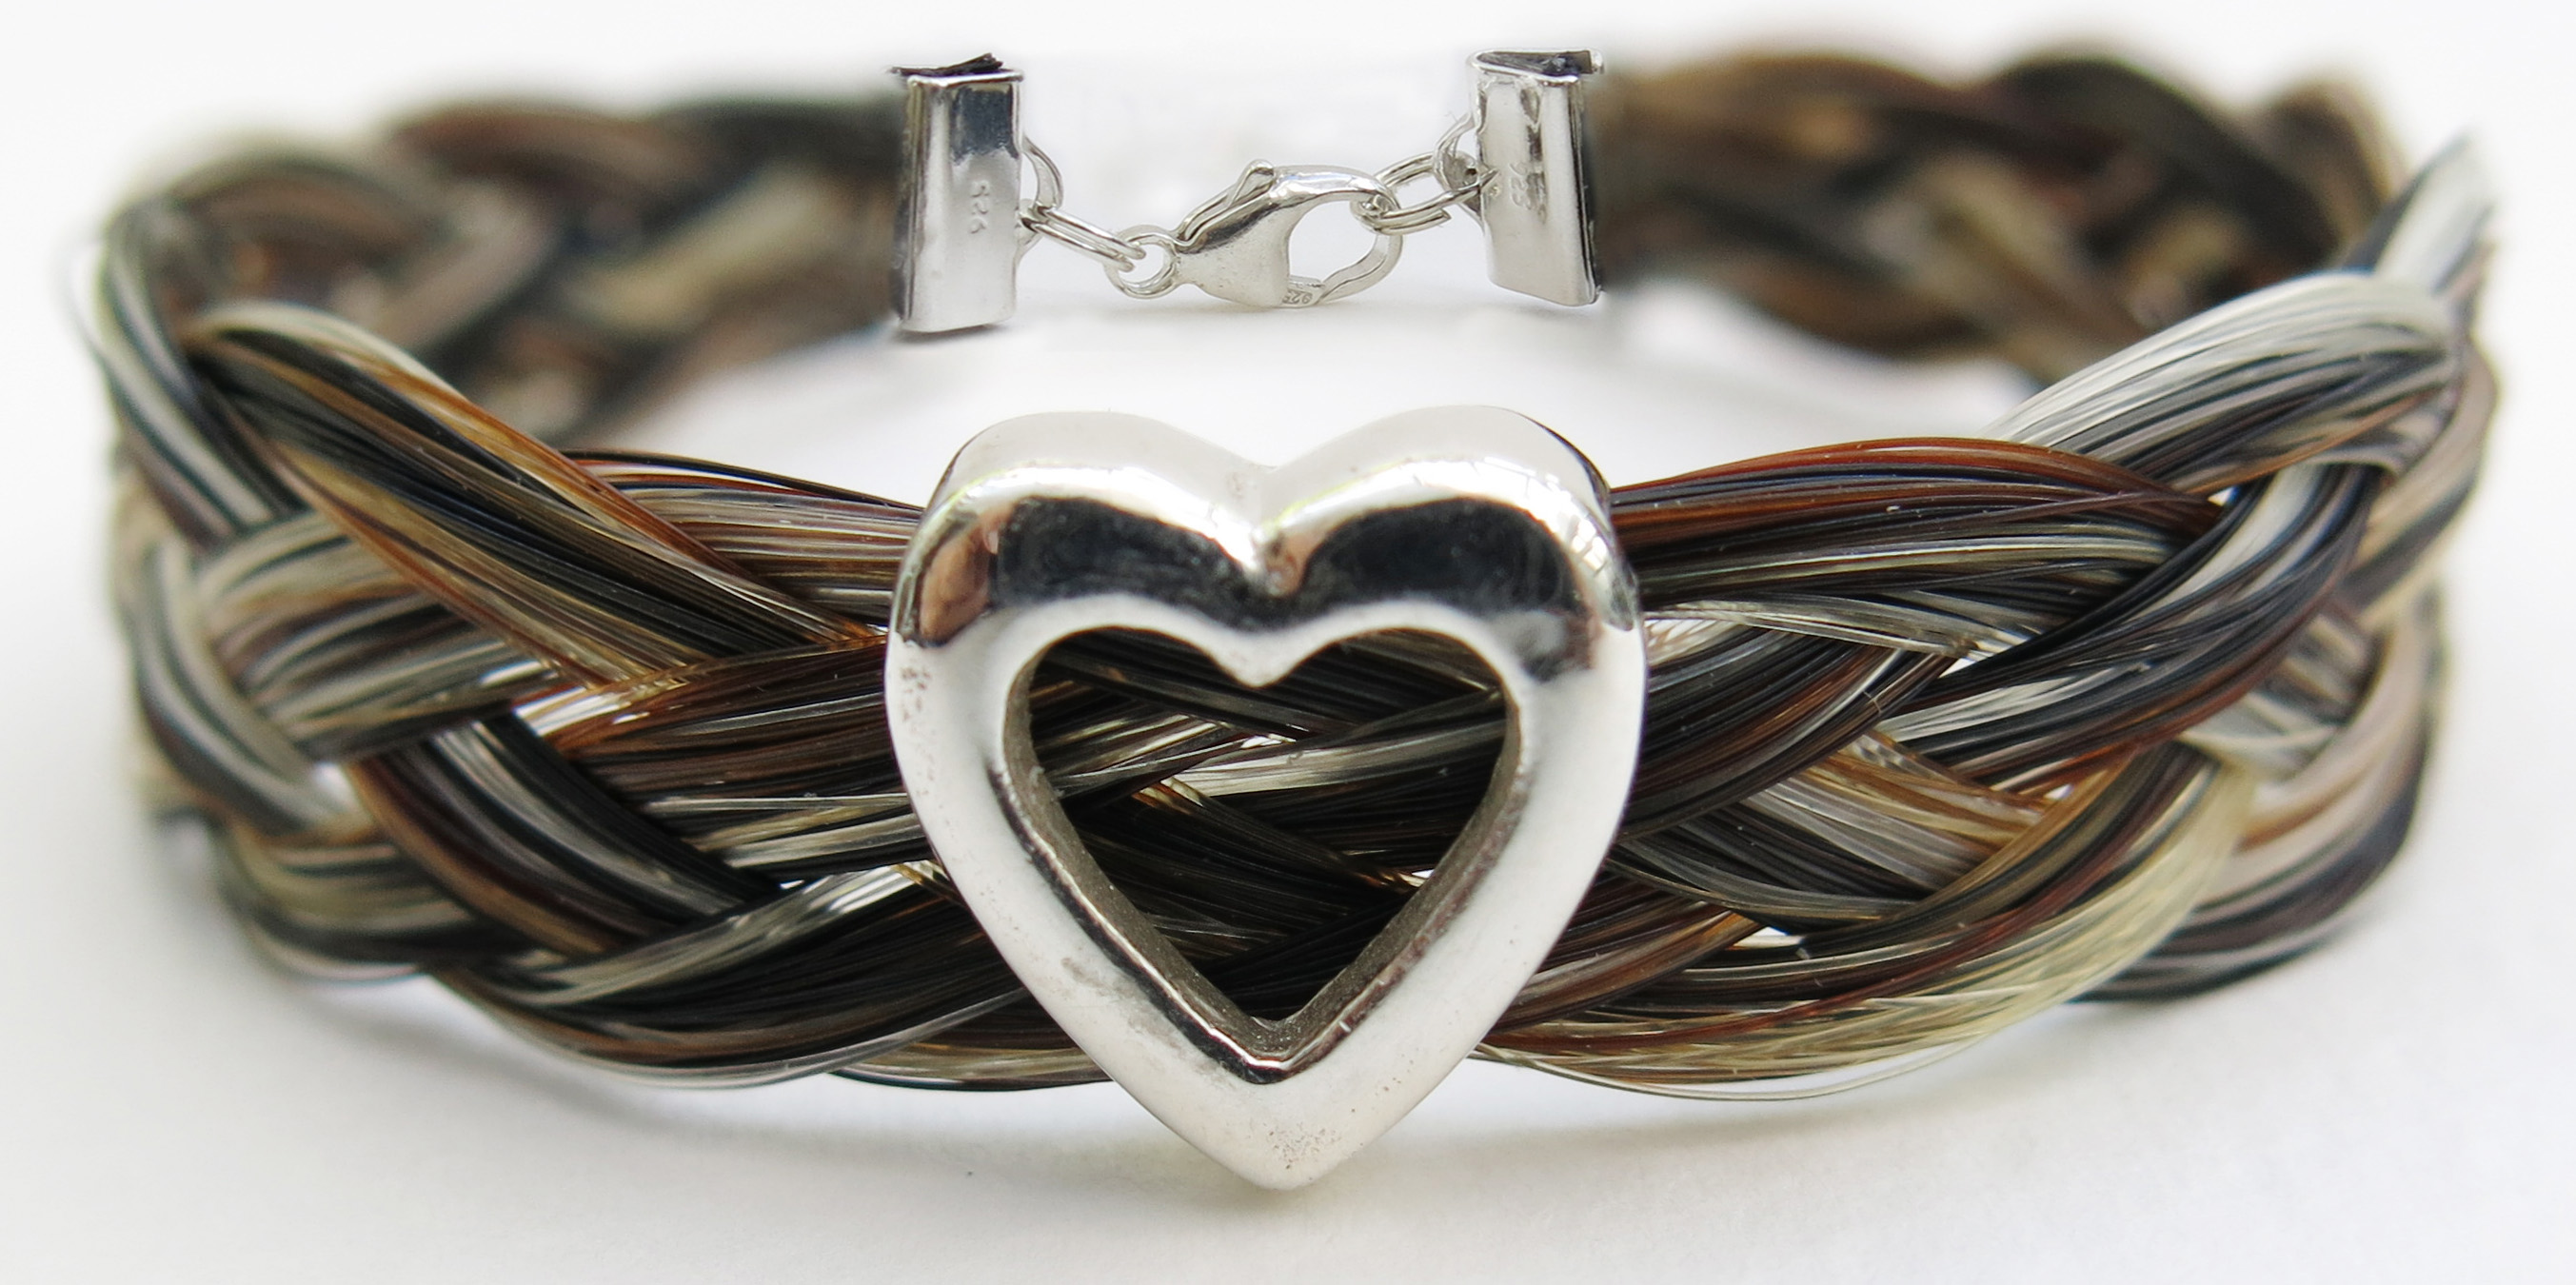 Gemosi Harmony heart horse hair bracelet - A truly special gift, for someone special to you